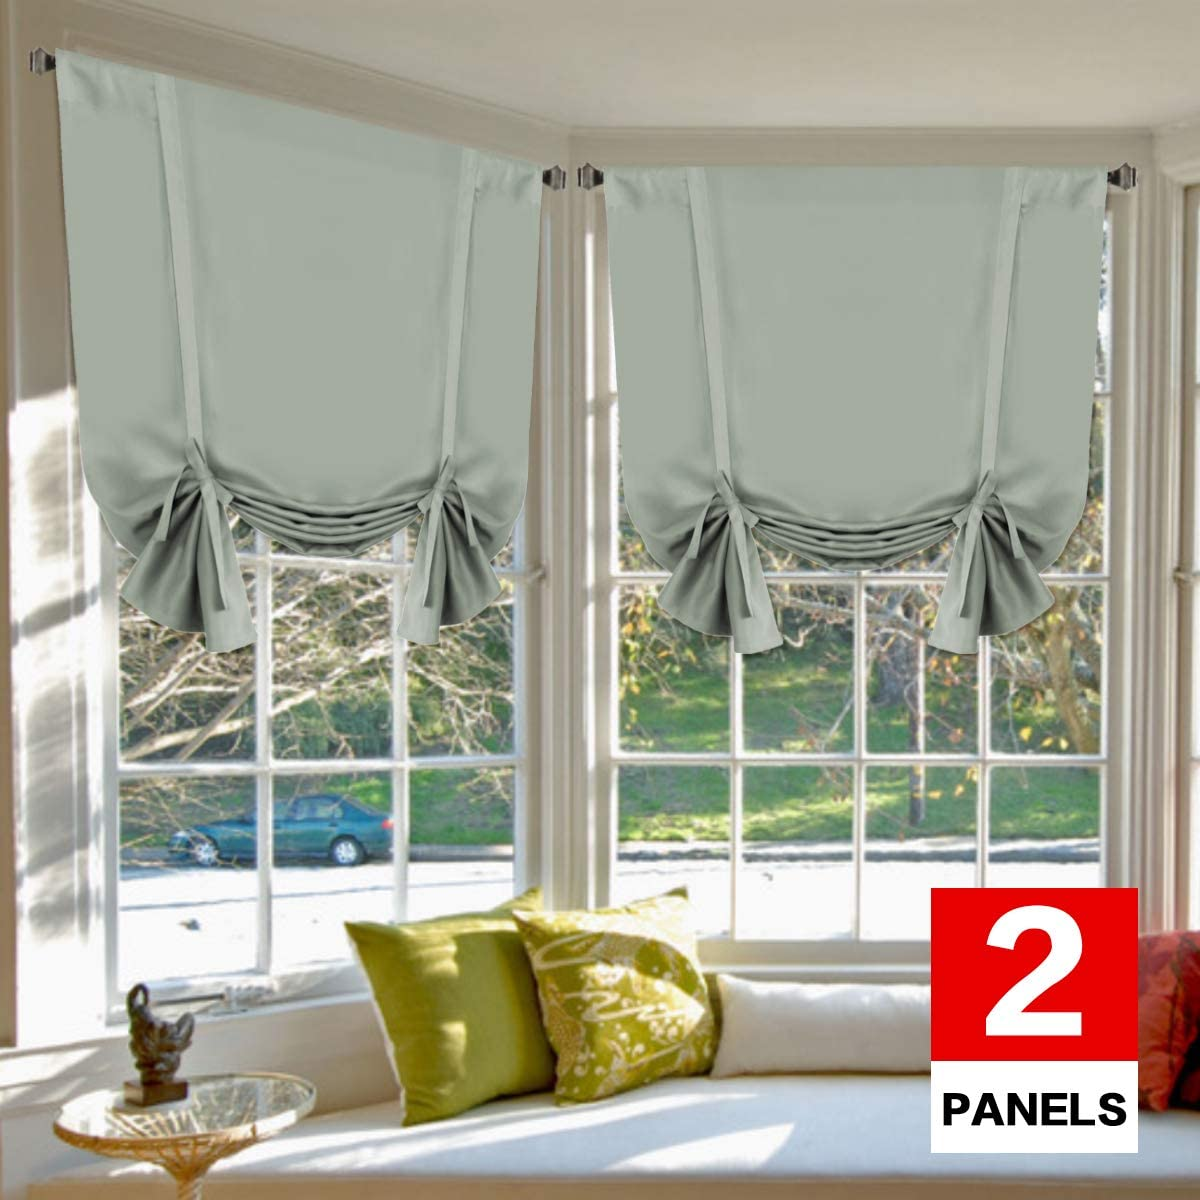 H.VERSAILTEX Blackout Tie Up Curtain Light Reducing Energy Efficient Window Shades Rod Pocket Panels for Kid s Room Set of 2 Panels, Sage Curtain, 42W x 63L